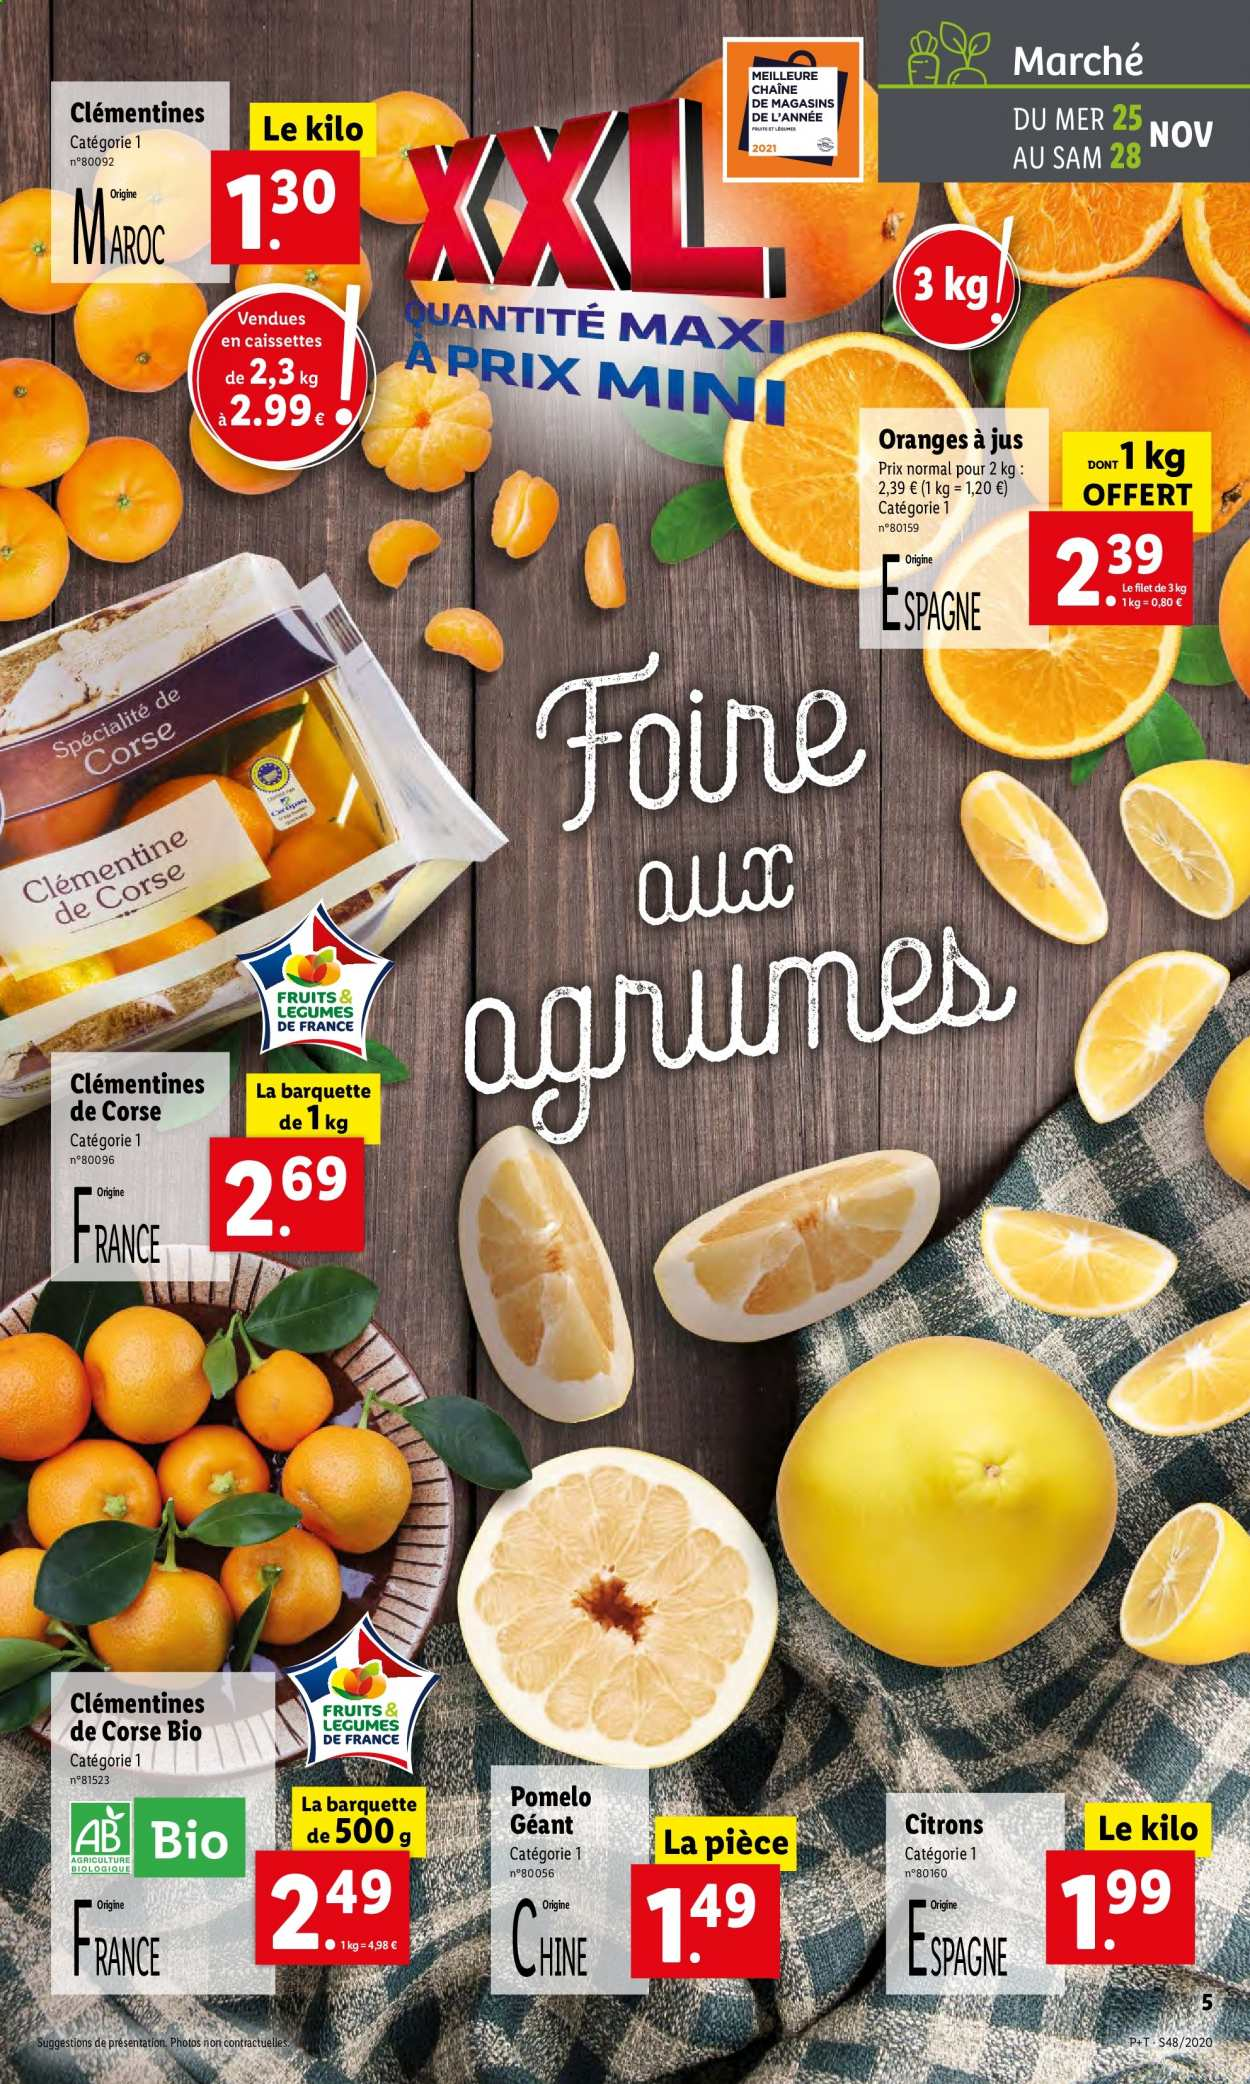 Catalogue Lidl - 25.11.2020 - 01.12.2020. Page 5.